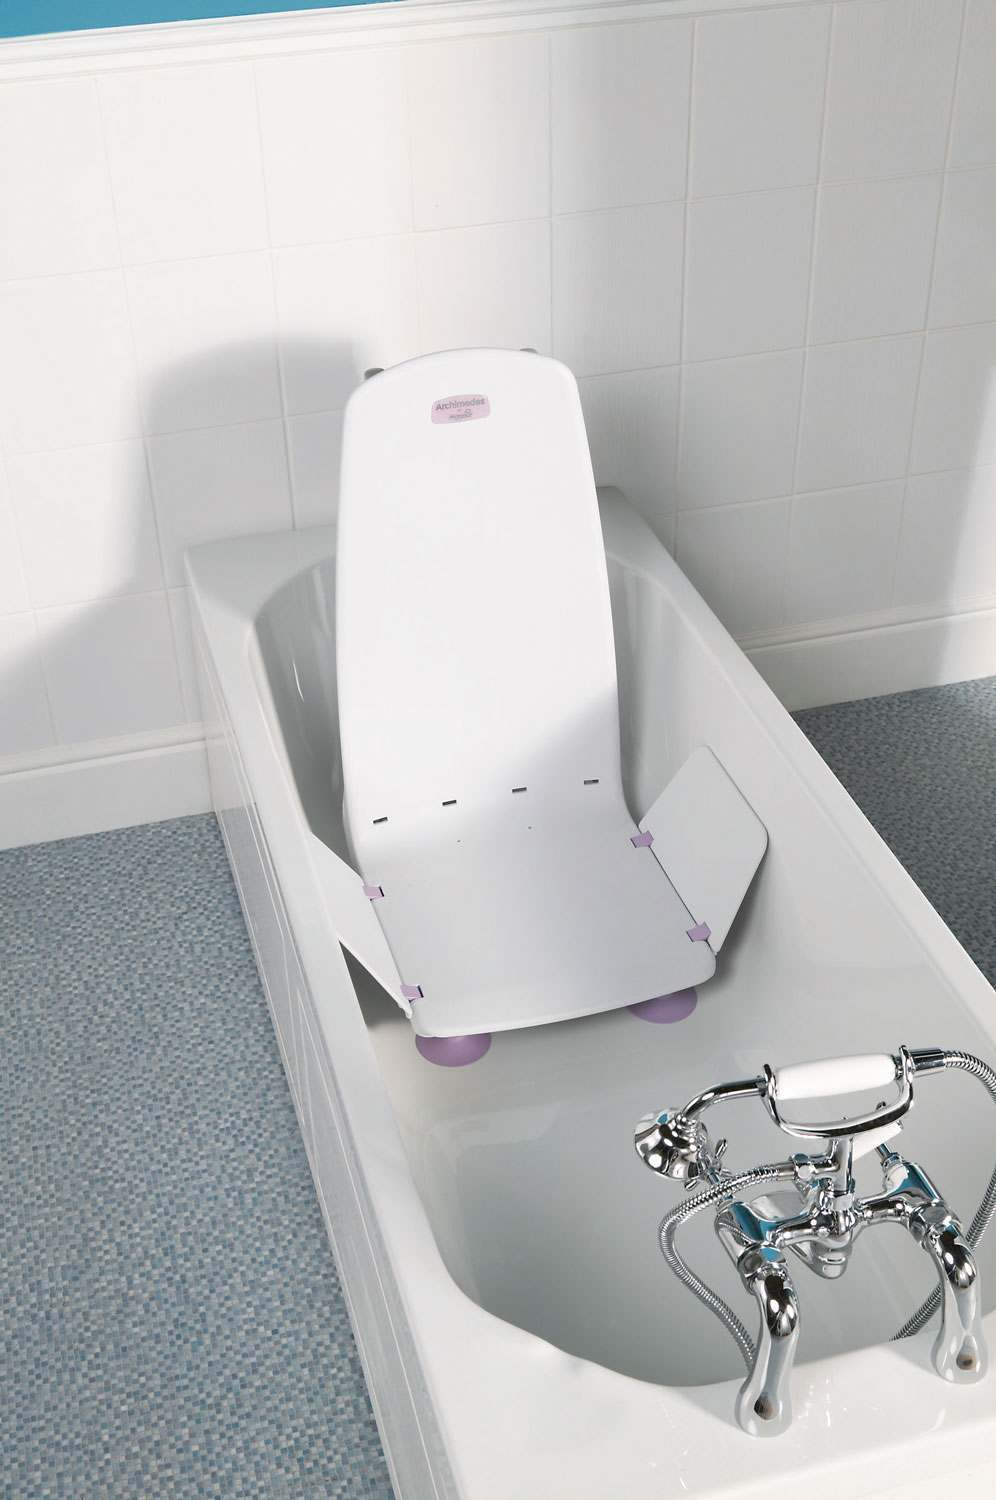 Mangar - Archimedes Bathlift - Portable Bath lifts - Bath lifts ...